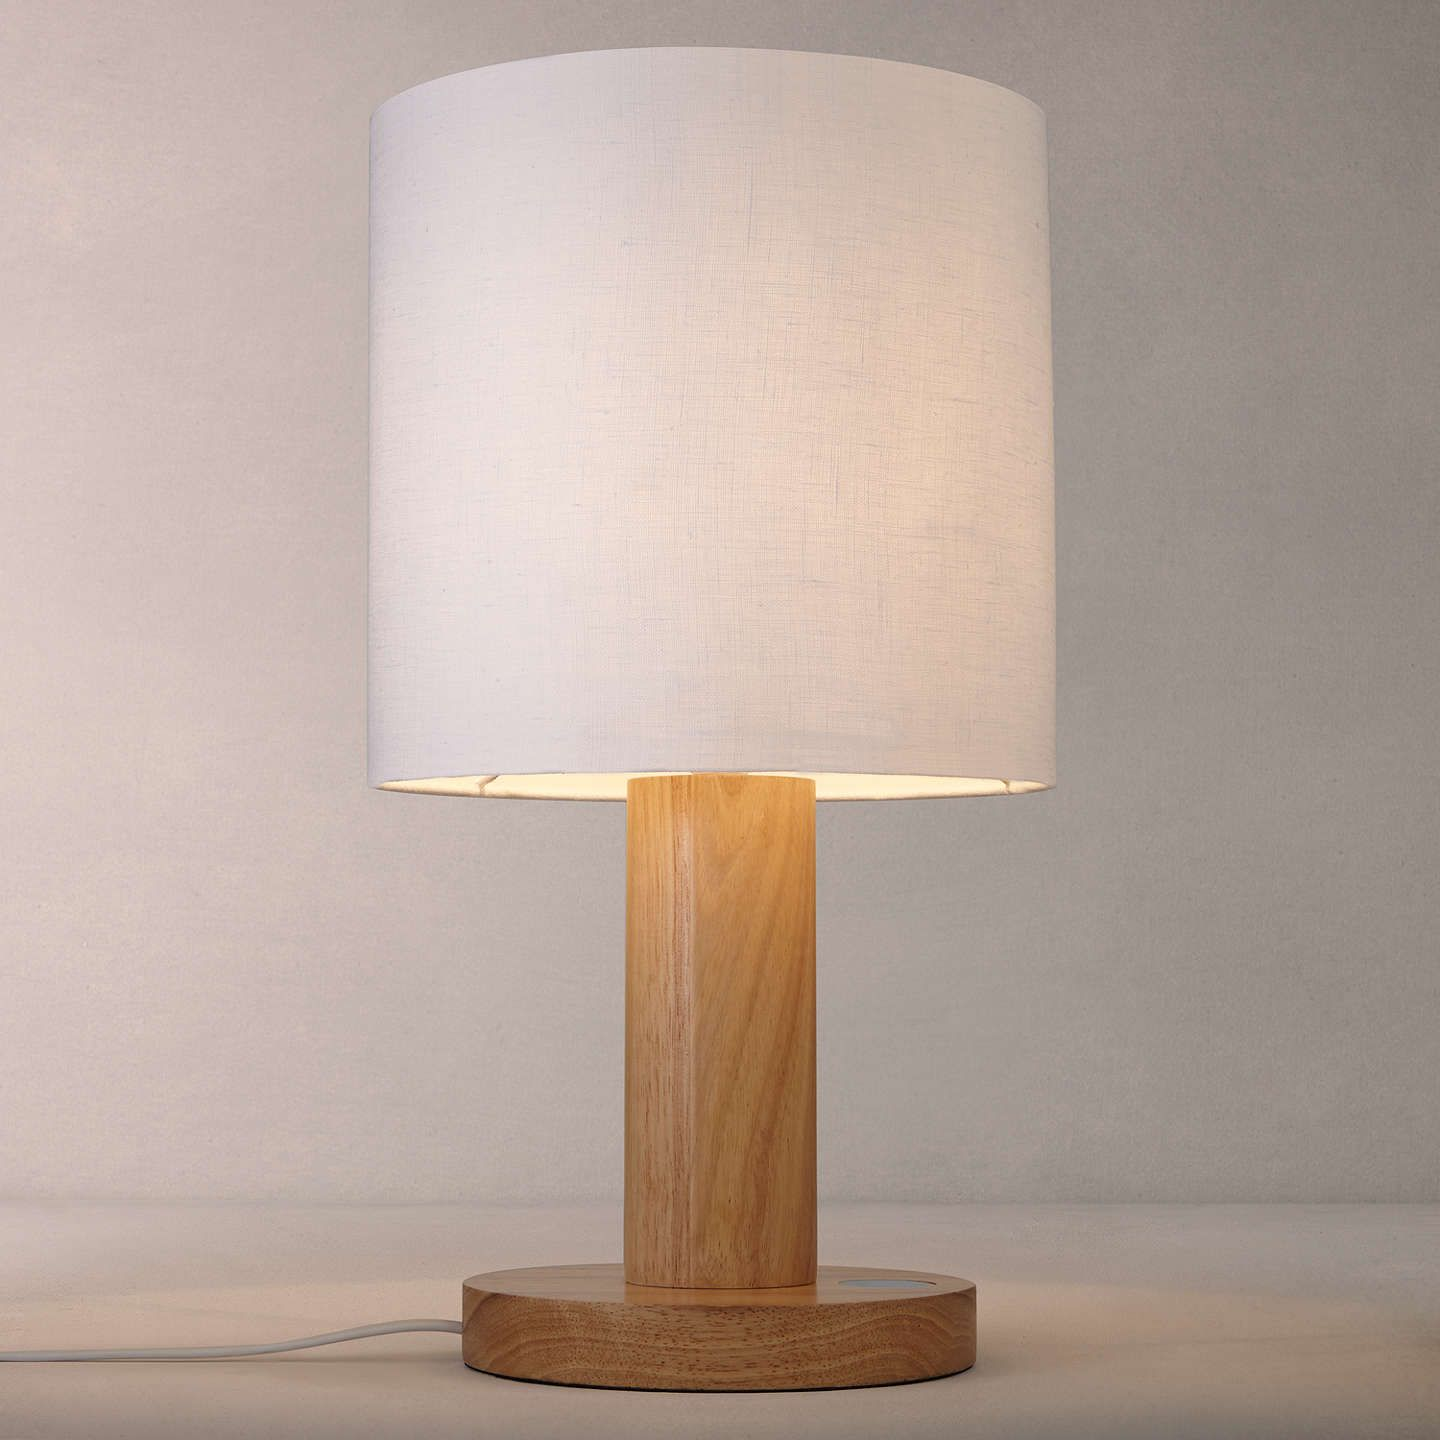 John lewis slater wood touch table lamp touch table lamps john buyjohn lewis slater large wooden touch lamp light wood online at johnlewis geotapseo Image collections